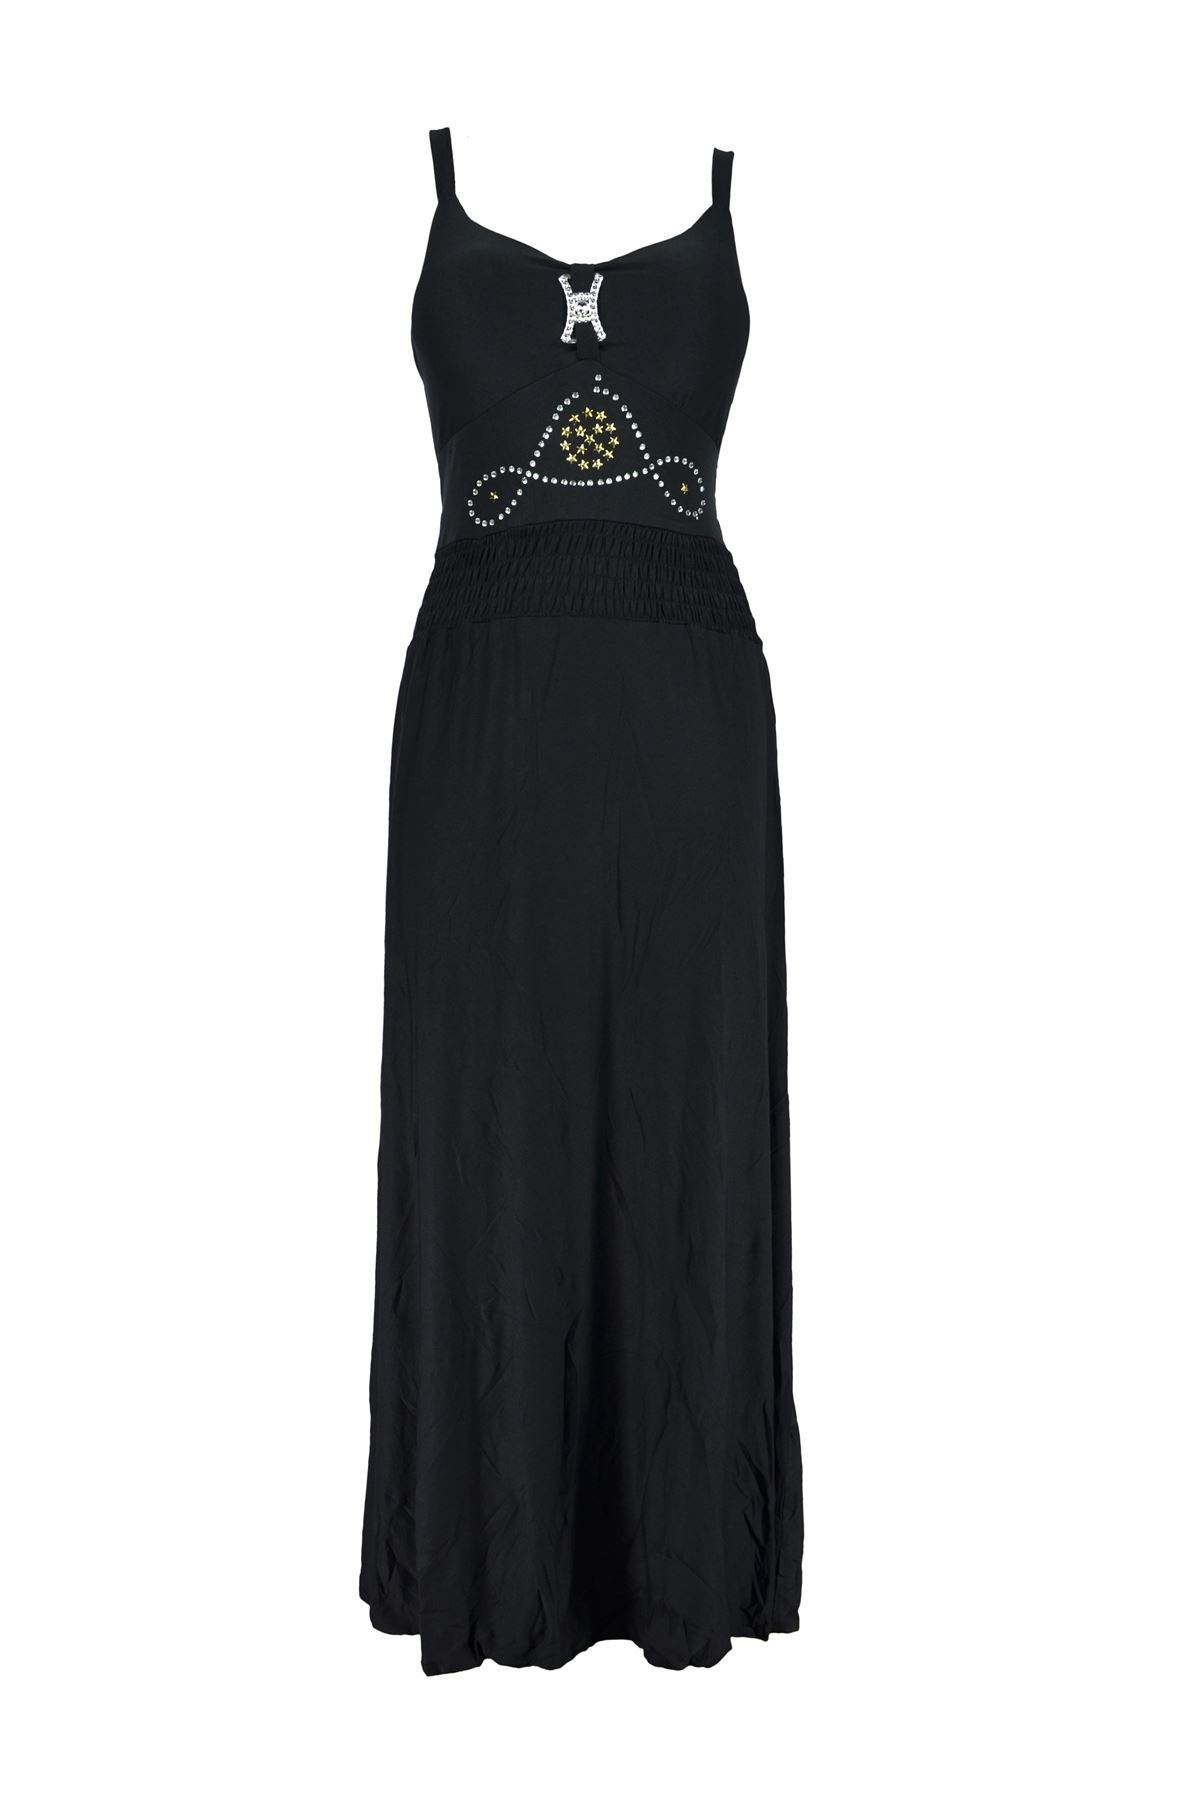 Belle Donne-Womens Clothing Long Maxi Simple Strap Solid Color Dress-Black -L